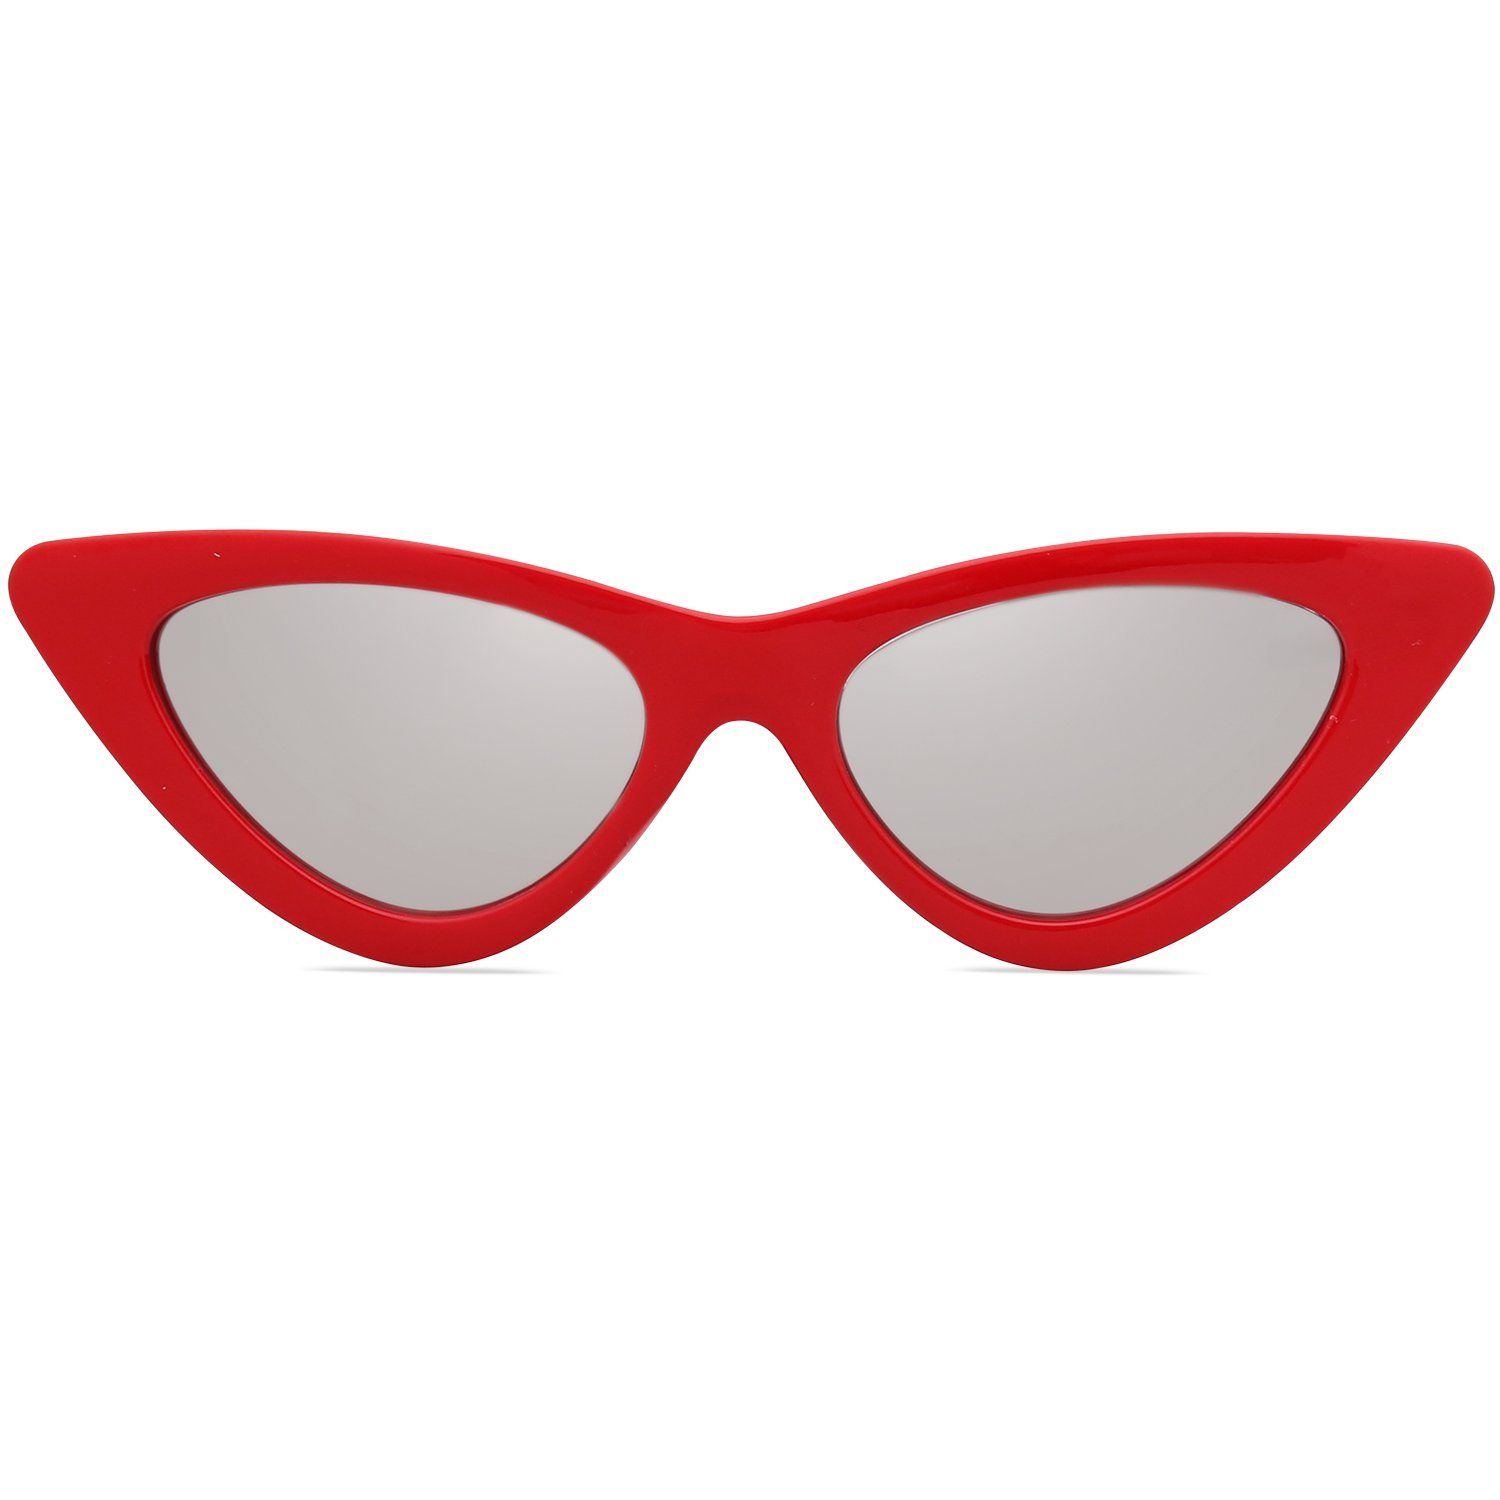 e8457064fc6fb SojoS Clout Goggles Cat Eye Sunglasses Vintage Mod Style Retro Kurt Cobain  Sunglasses SJ2044 with Red